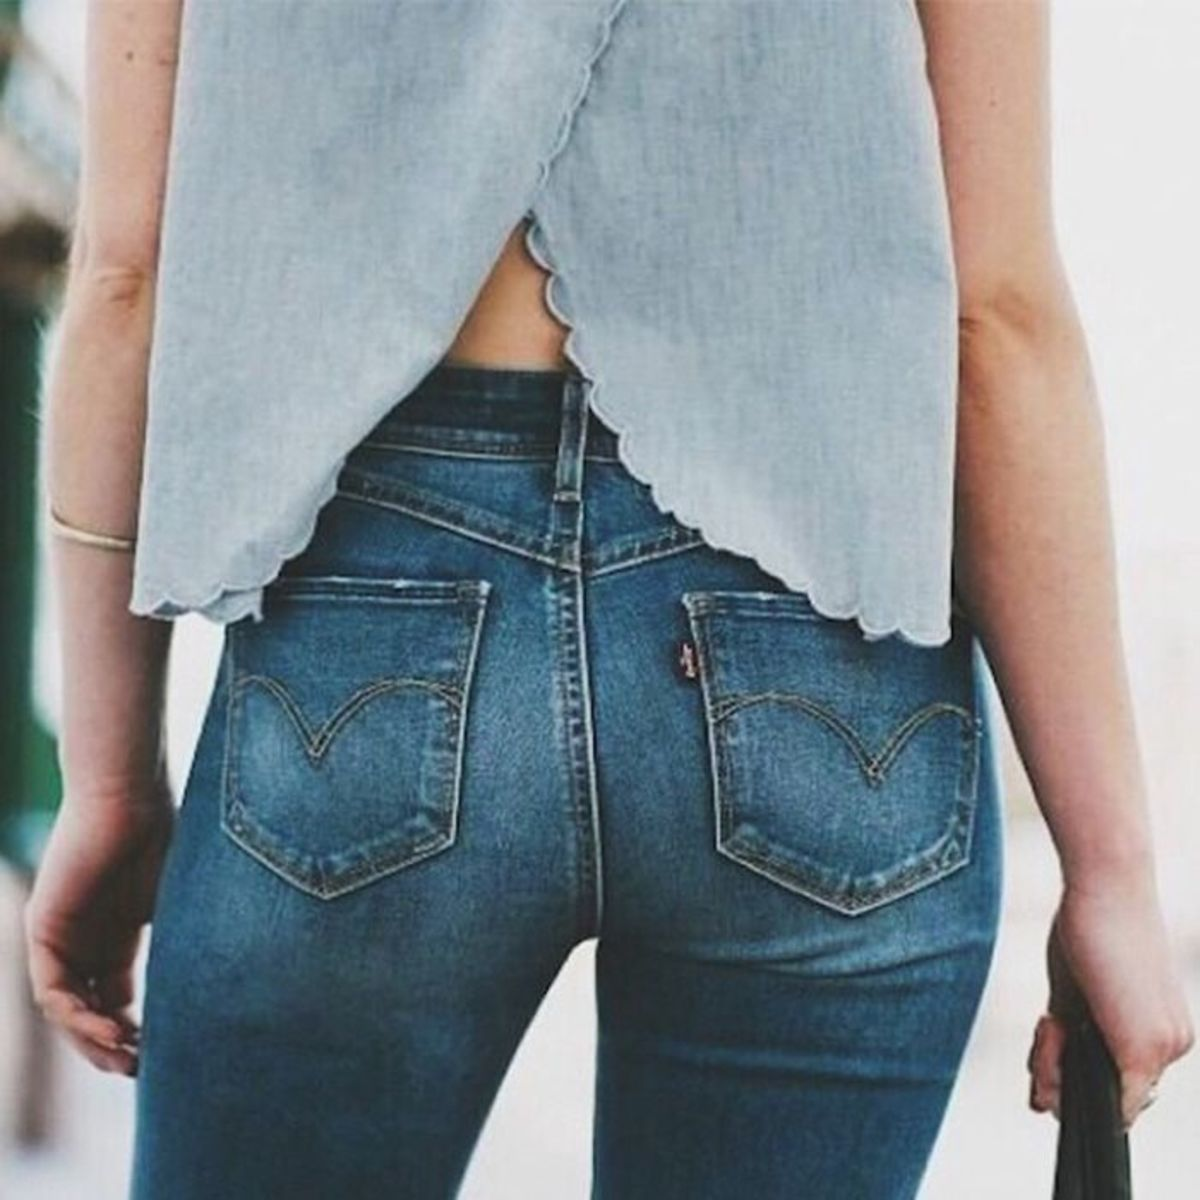 This is a good example of a flattering pocket.